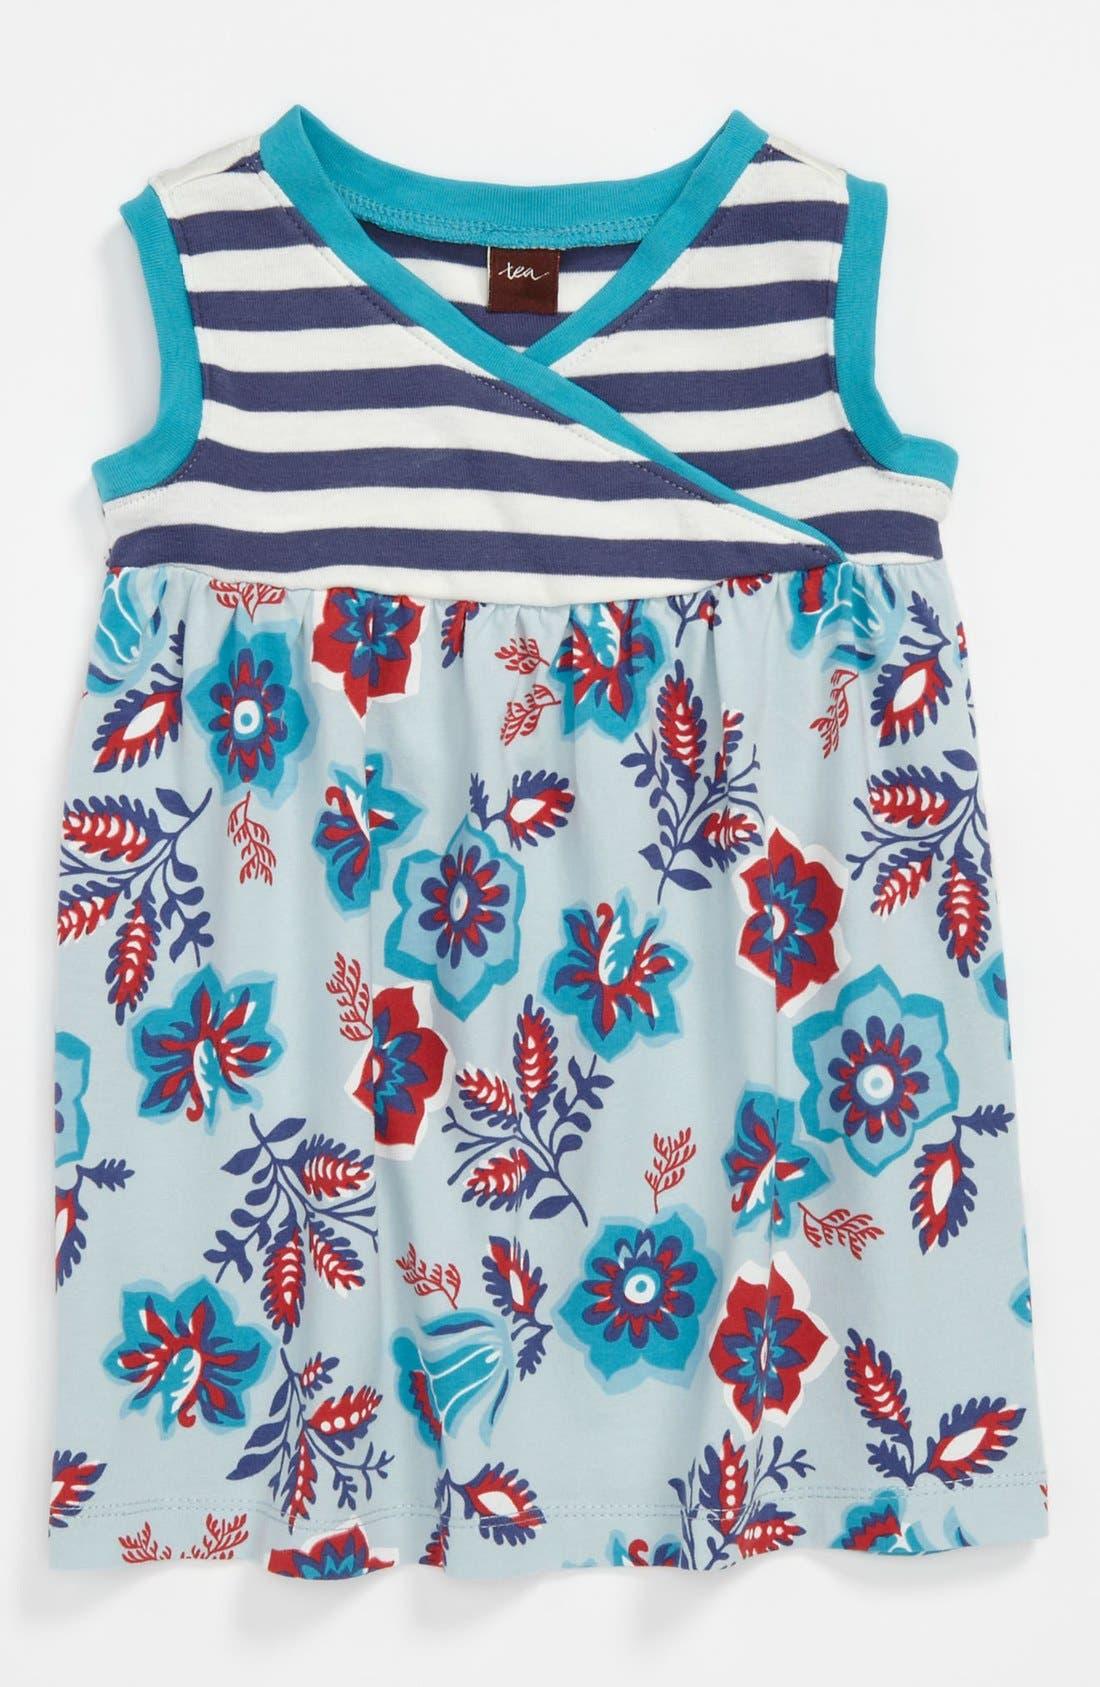 Alternate Image 1 Selected - Tea Collection 'Sea Gypsy' Dress (Baby)